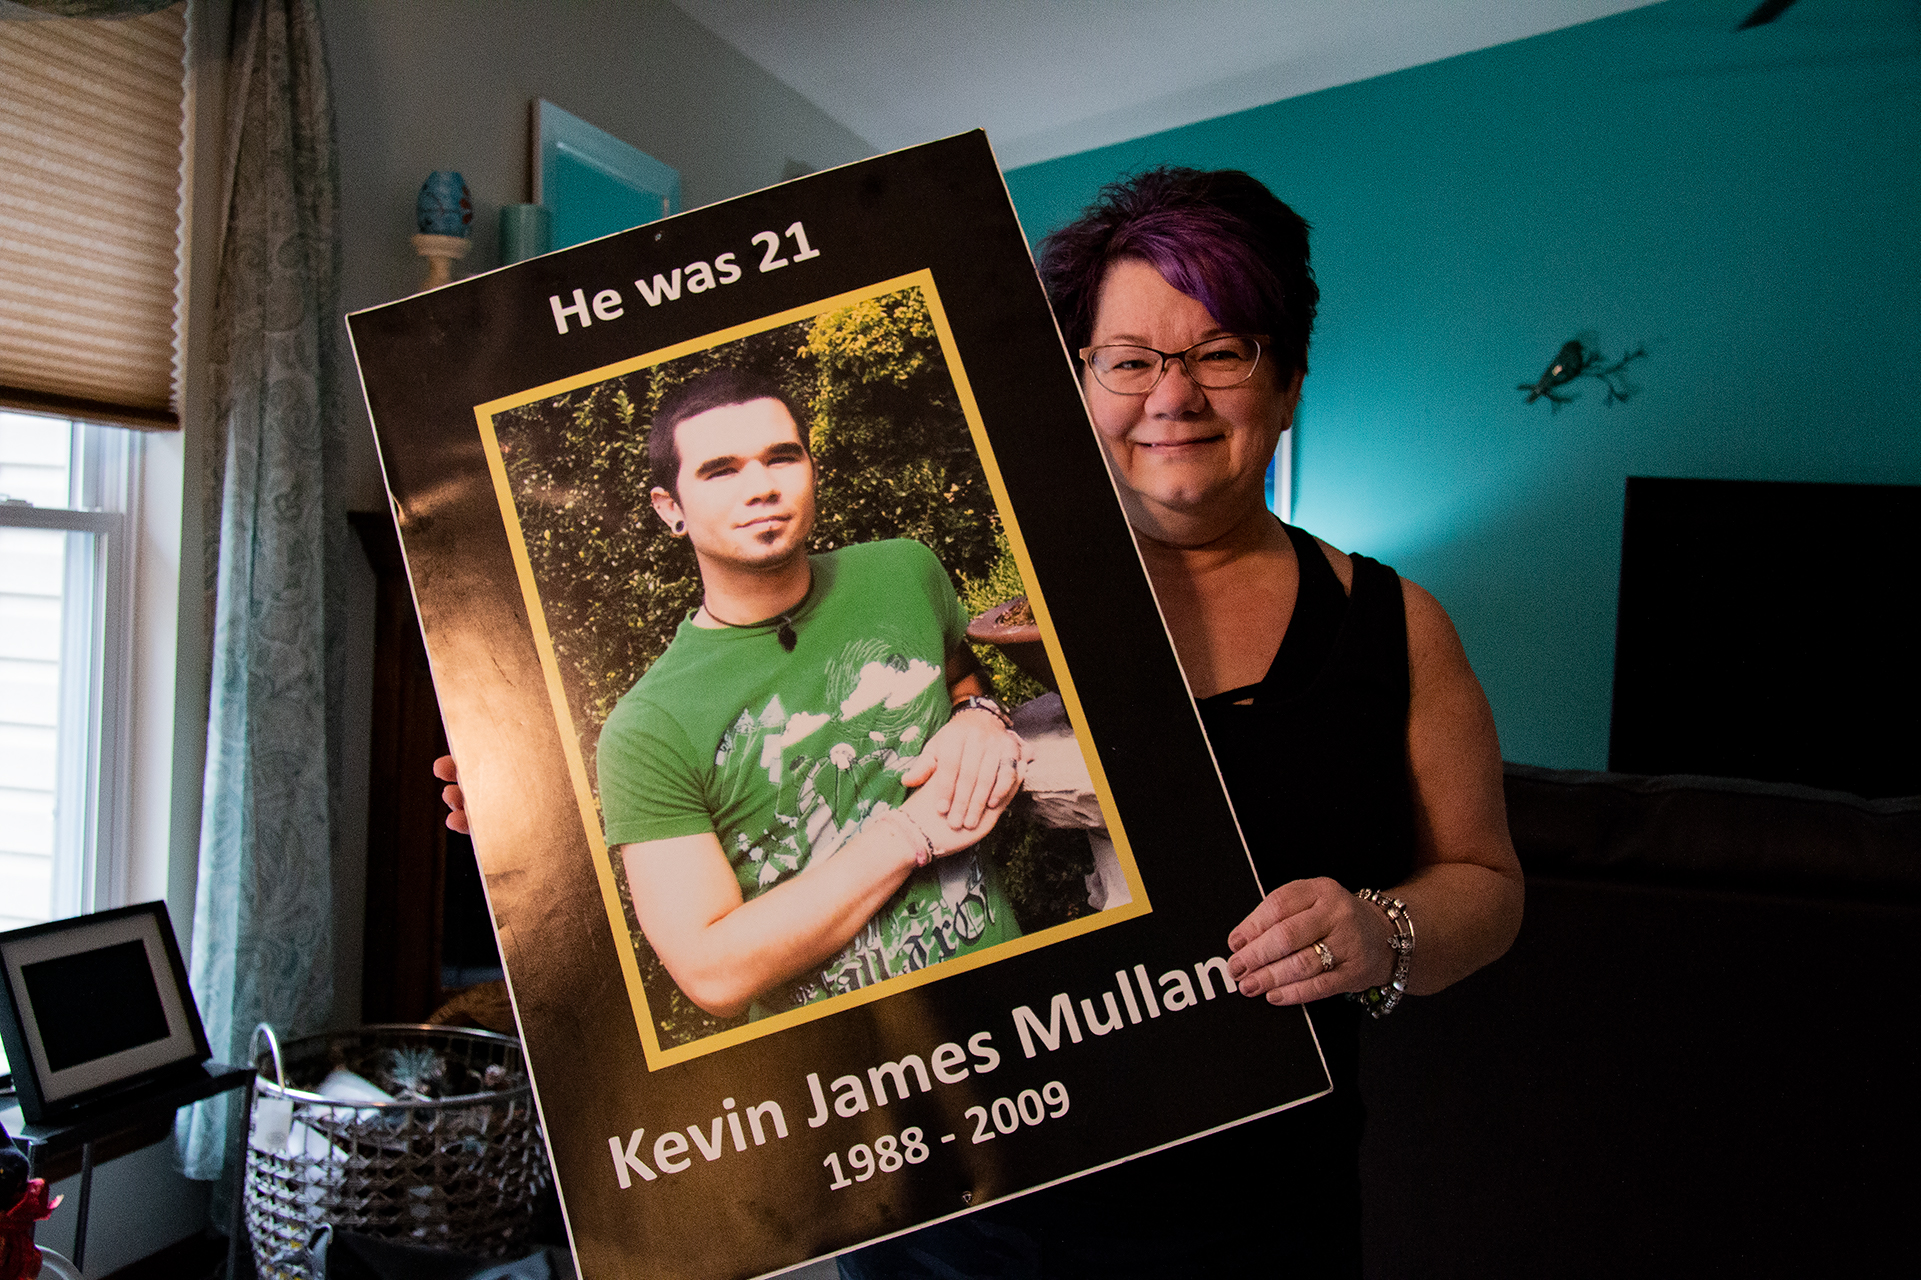 Caption: Kathi Arbini holds a photograph of her son, Kevin Mullane, who died of a heroin overdose at the age of 21., Credit: SEBASTIÁN MARTÍNEZ VALDIVIA/SIDE EFFECTS PUBLIC MEDIA